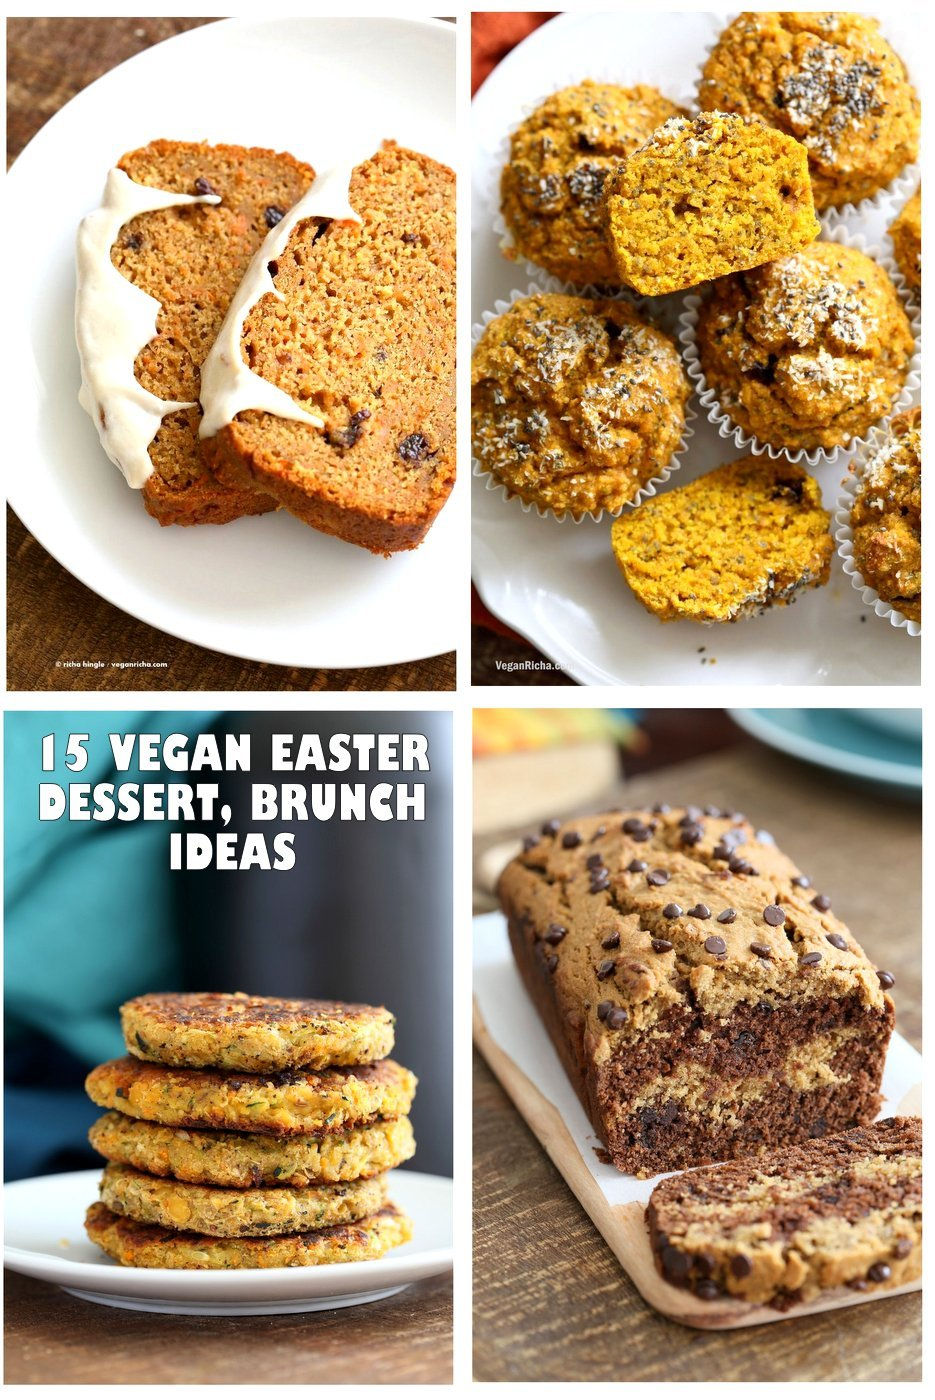 15 Vegan Easter Brunch and Dessert Recipes